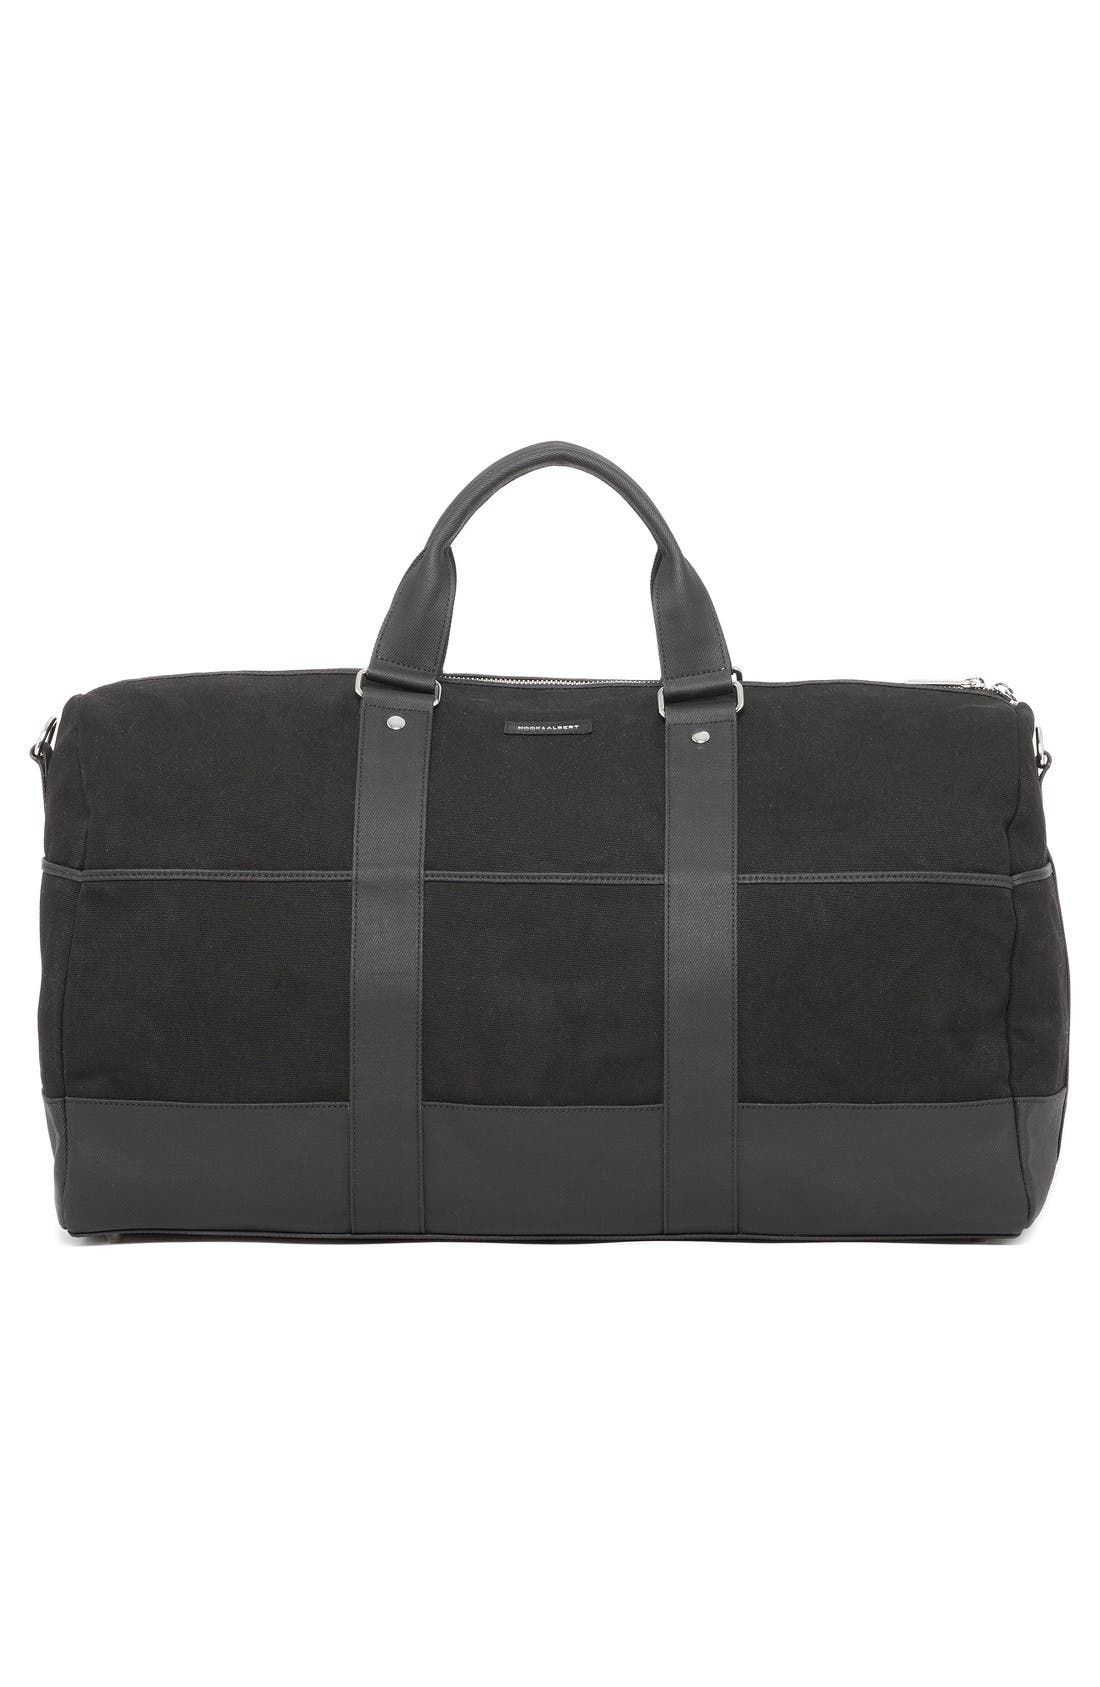 hook + ALBERT Gym Duffel Bag